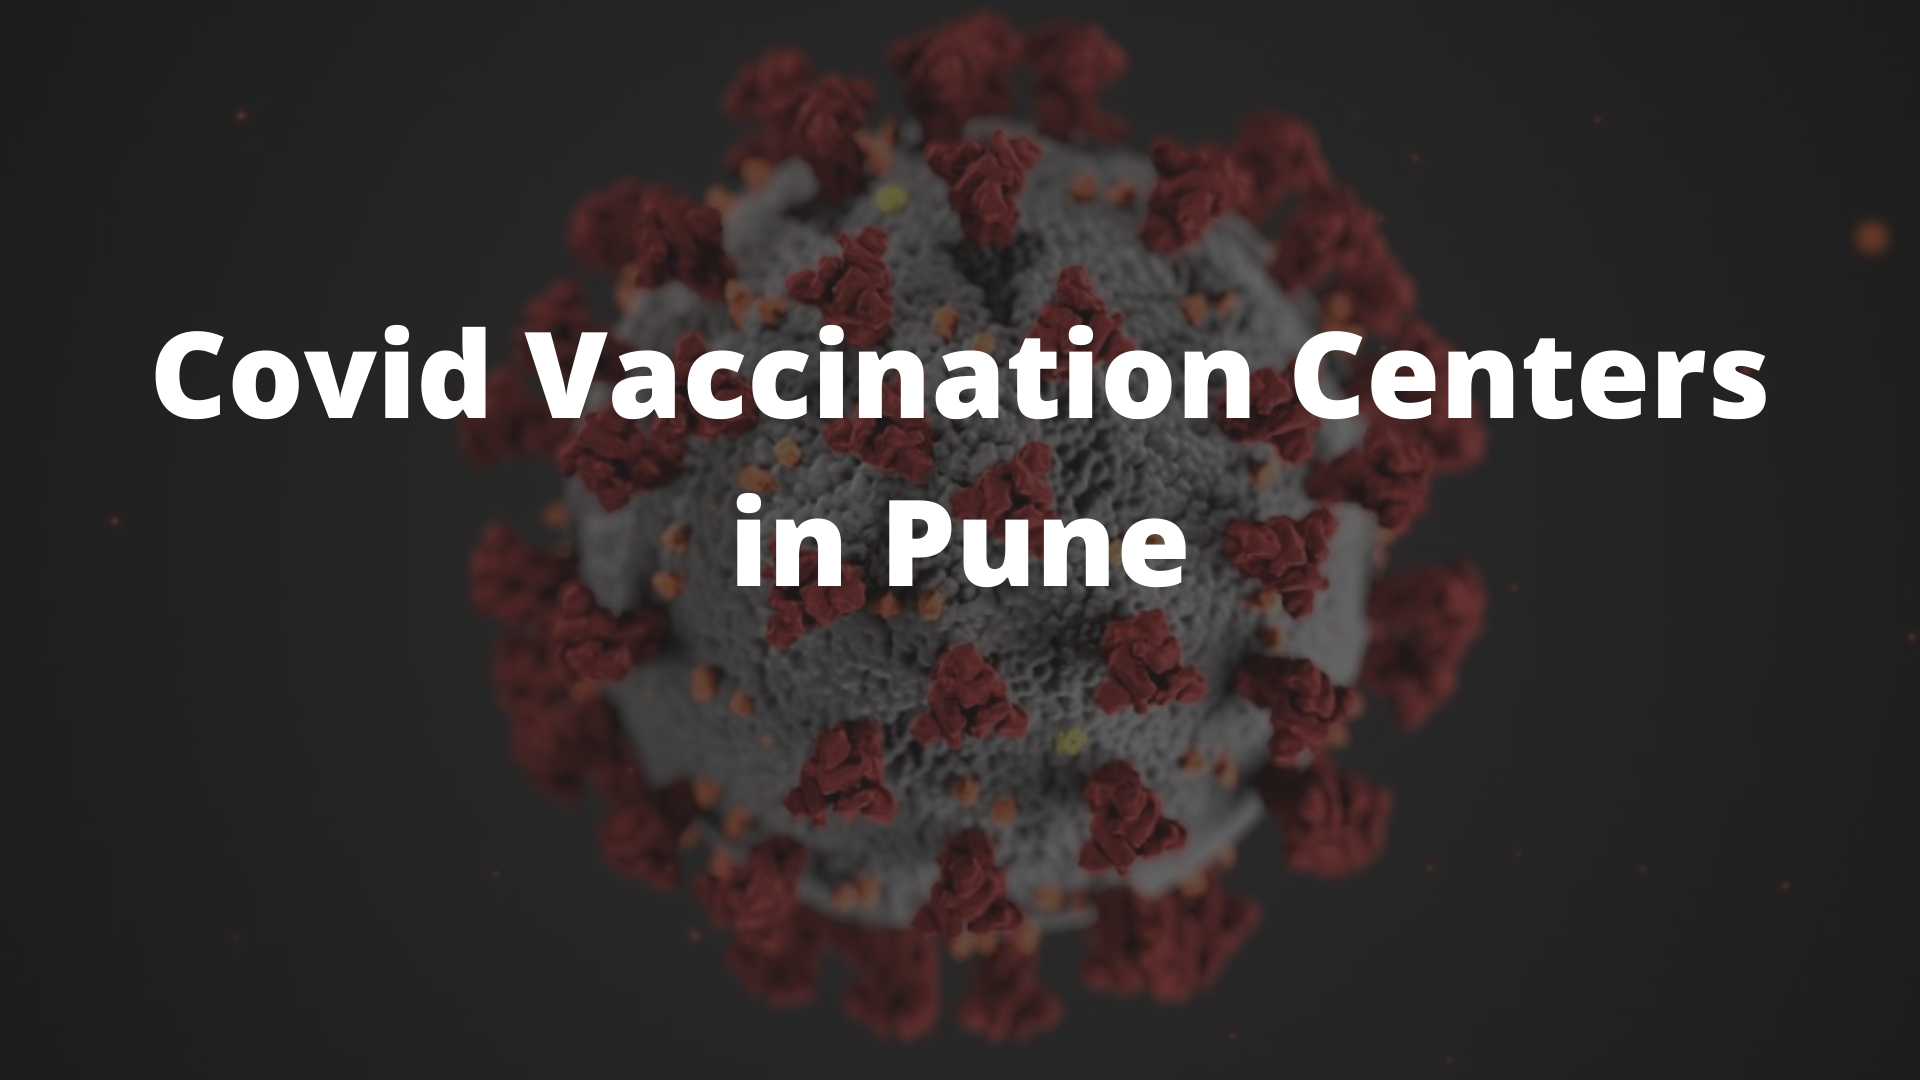 Covid Vaccination Centers in Pune